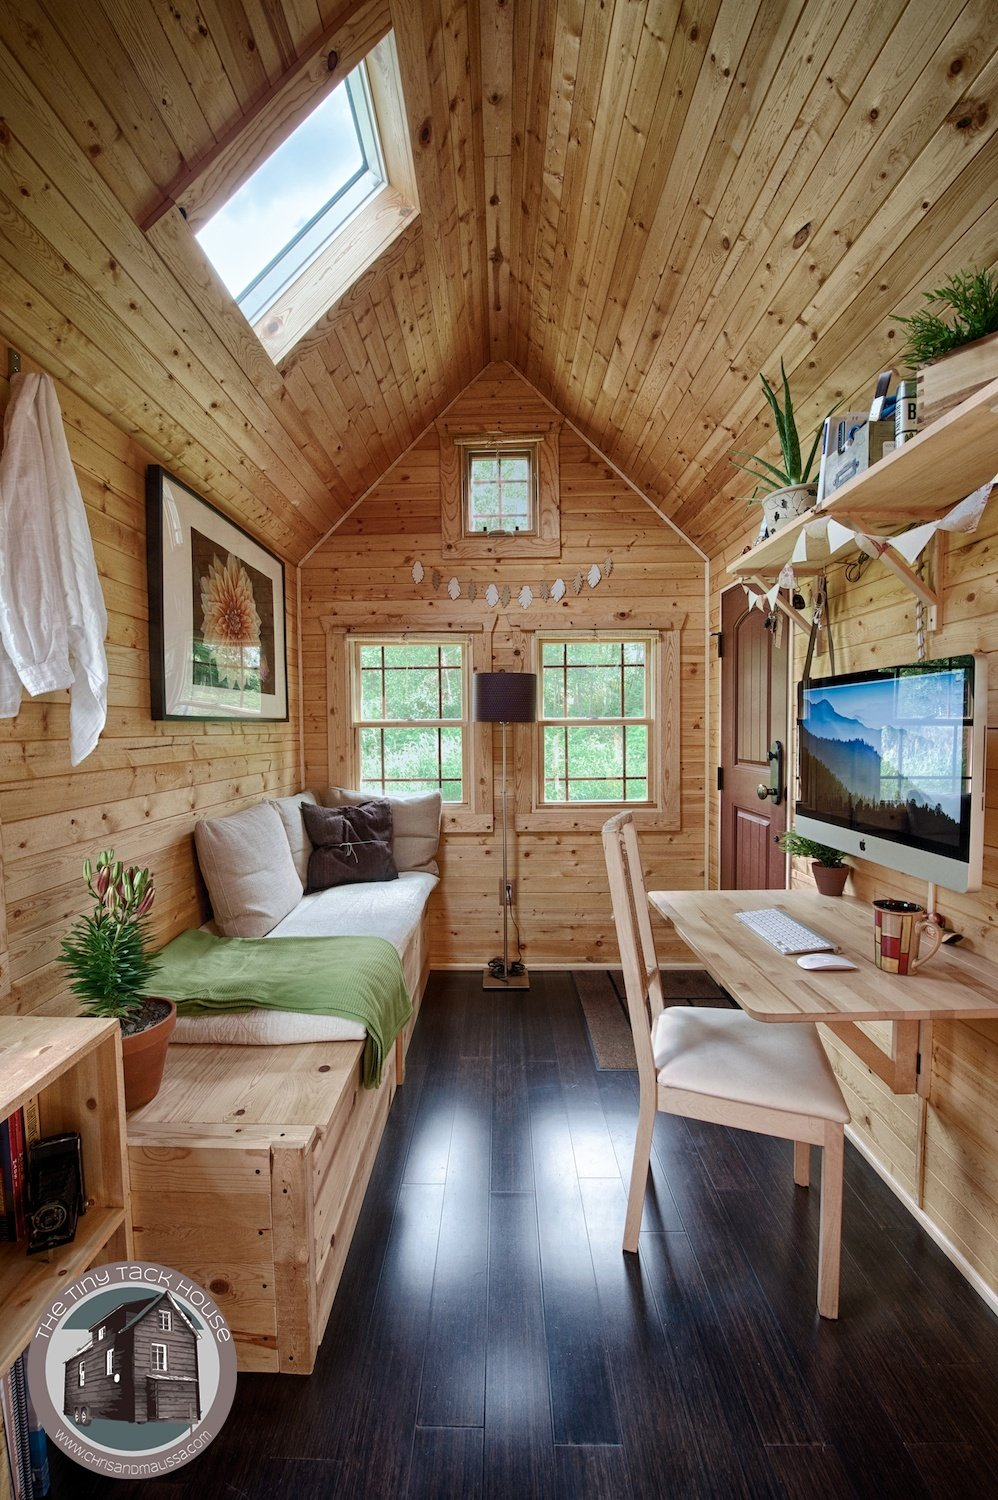 16 tiny houses you wish you could live in - Inside house ...